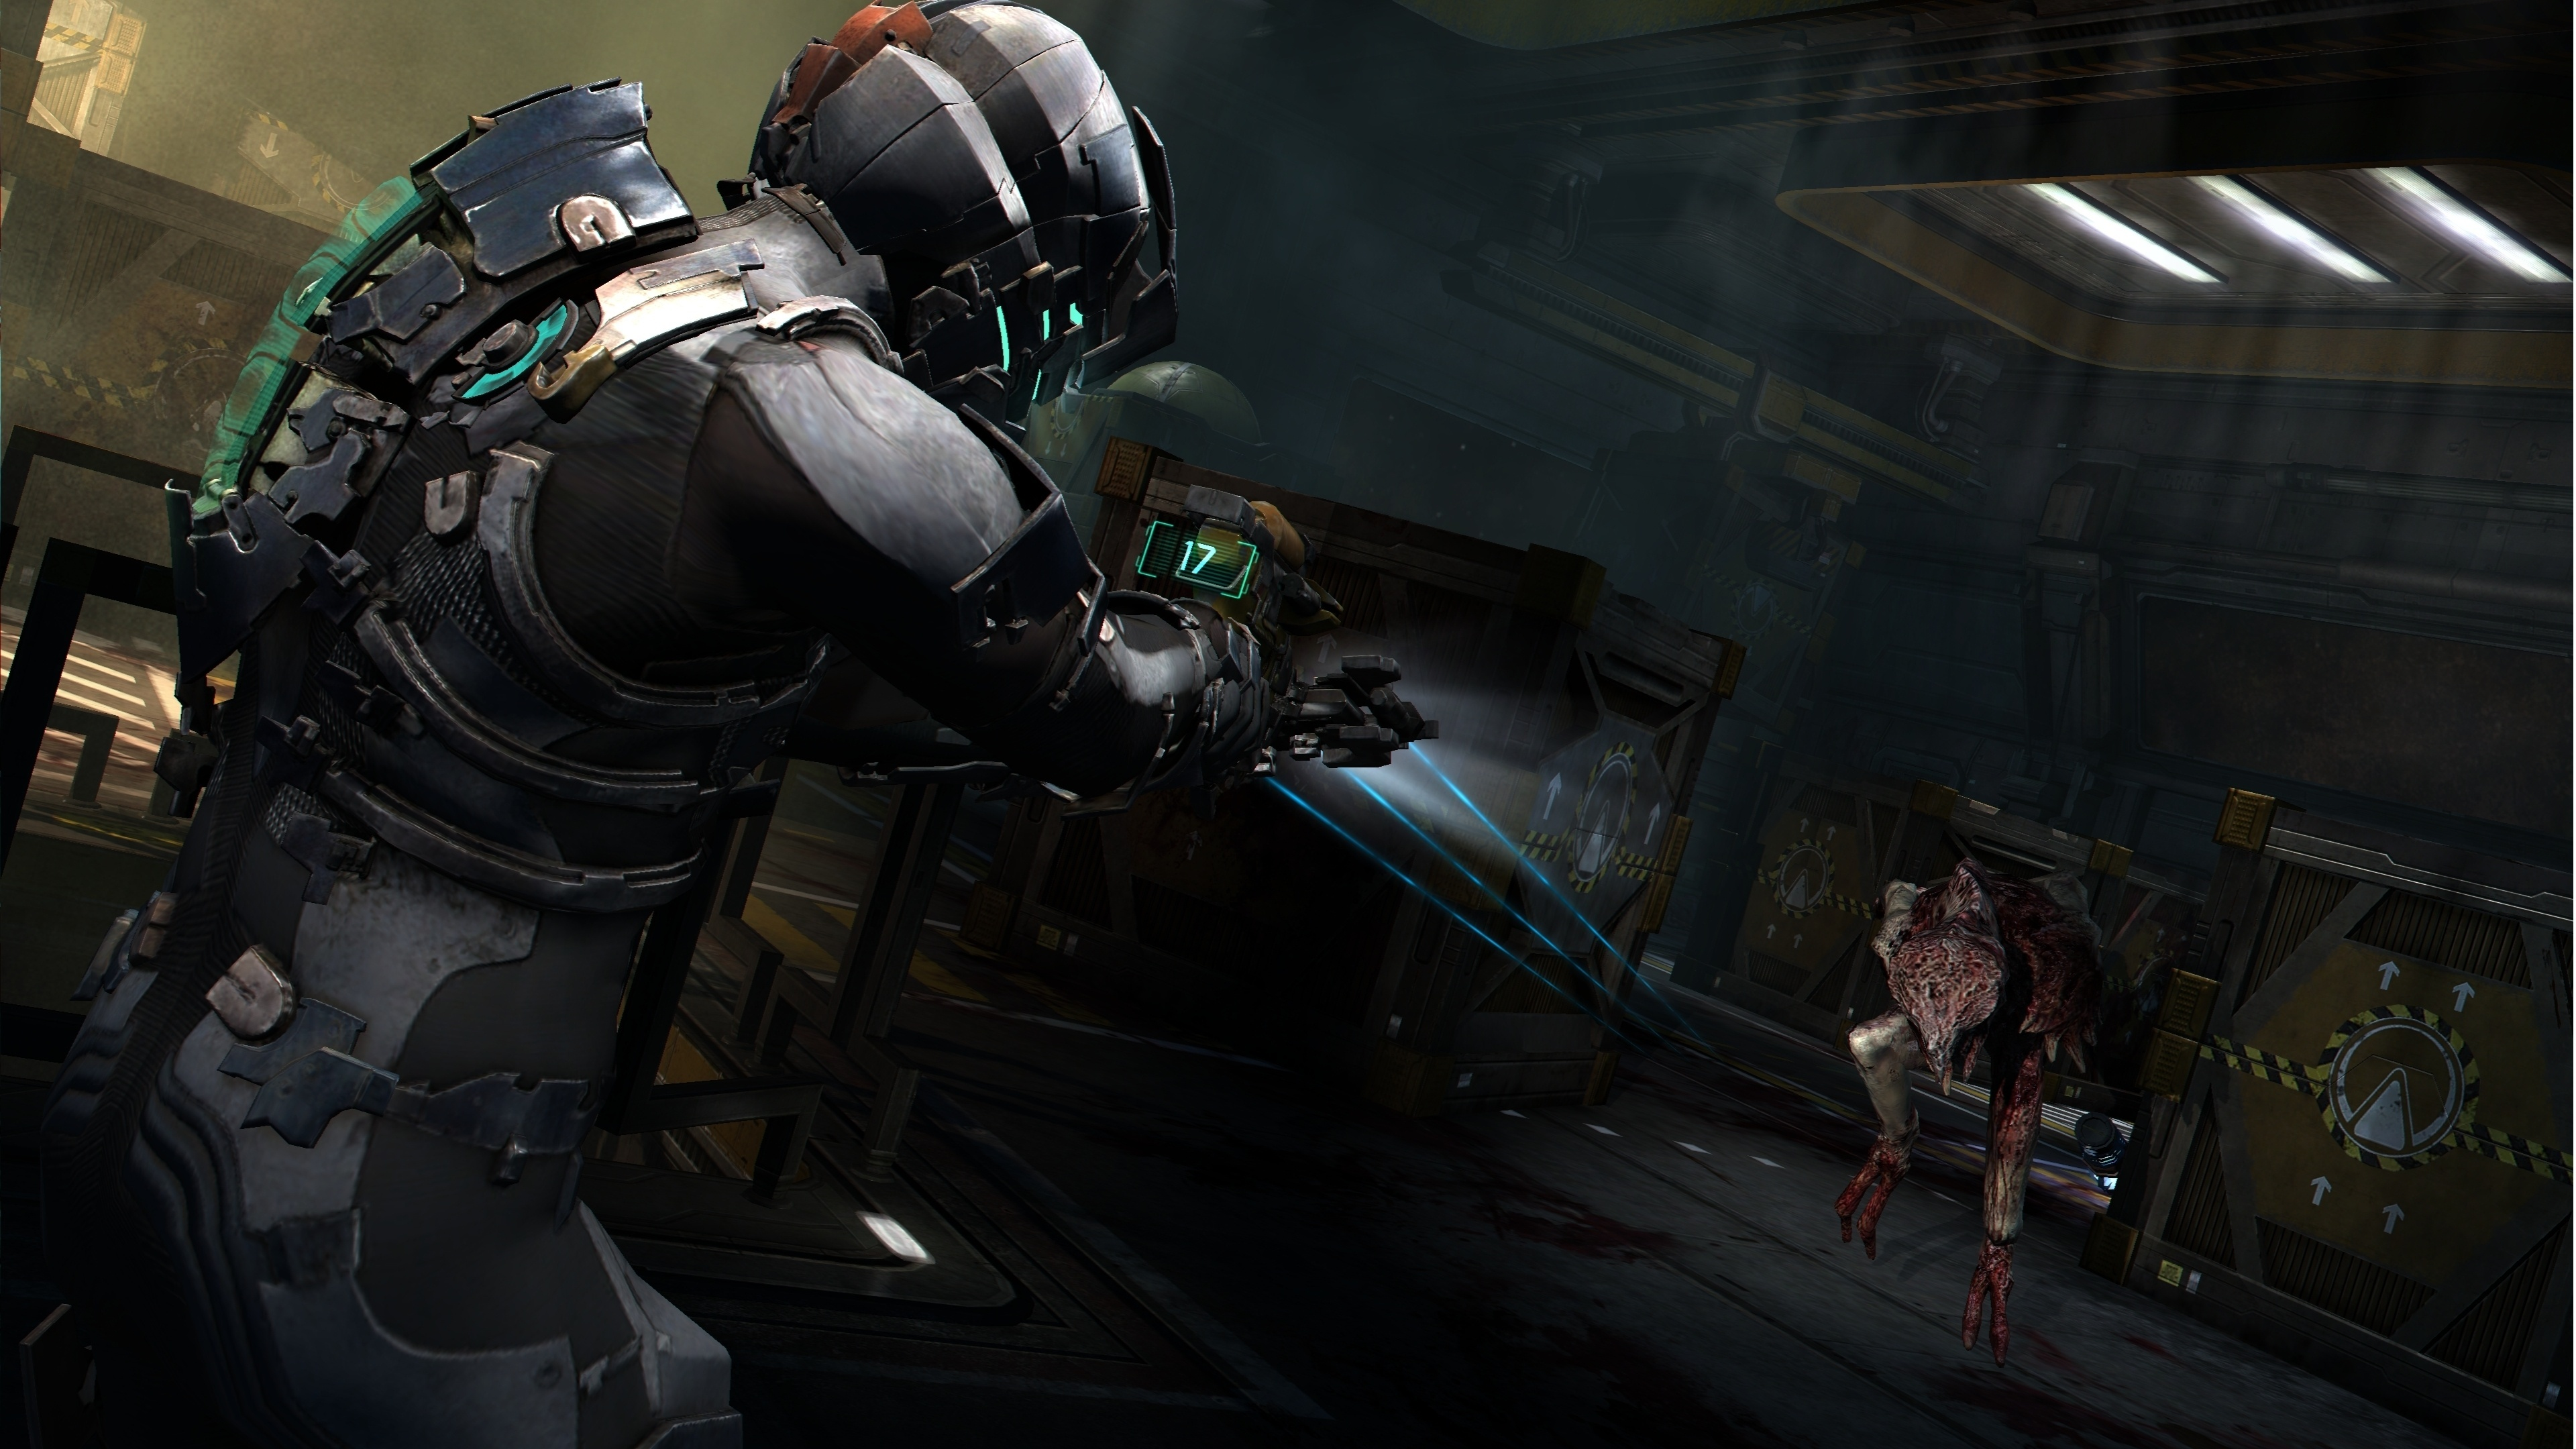 85 Dead Space 2 Hd Wallpapers Background Images Wallpaper